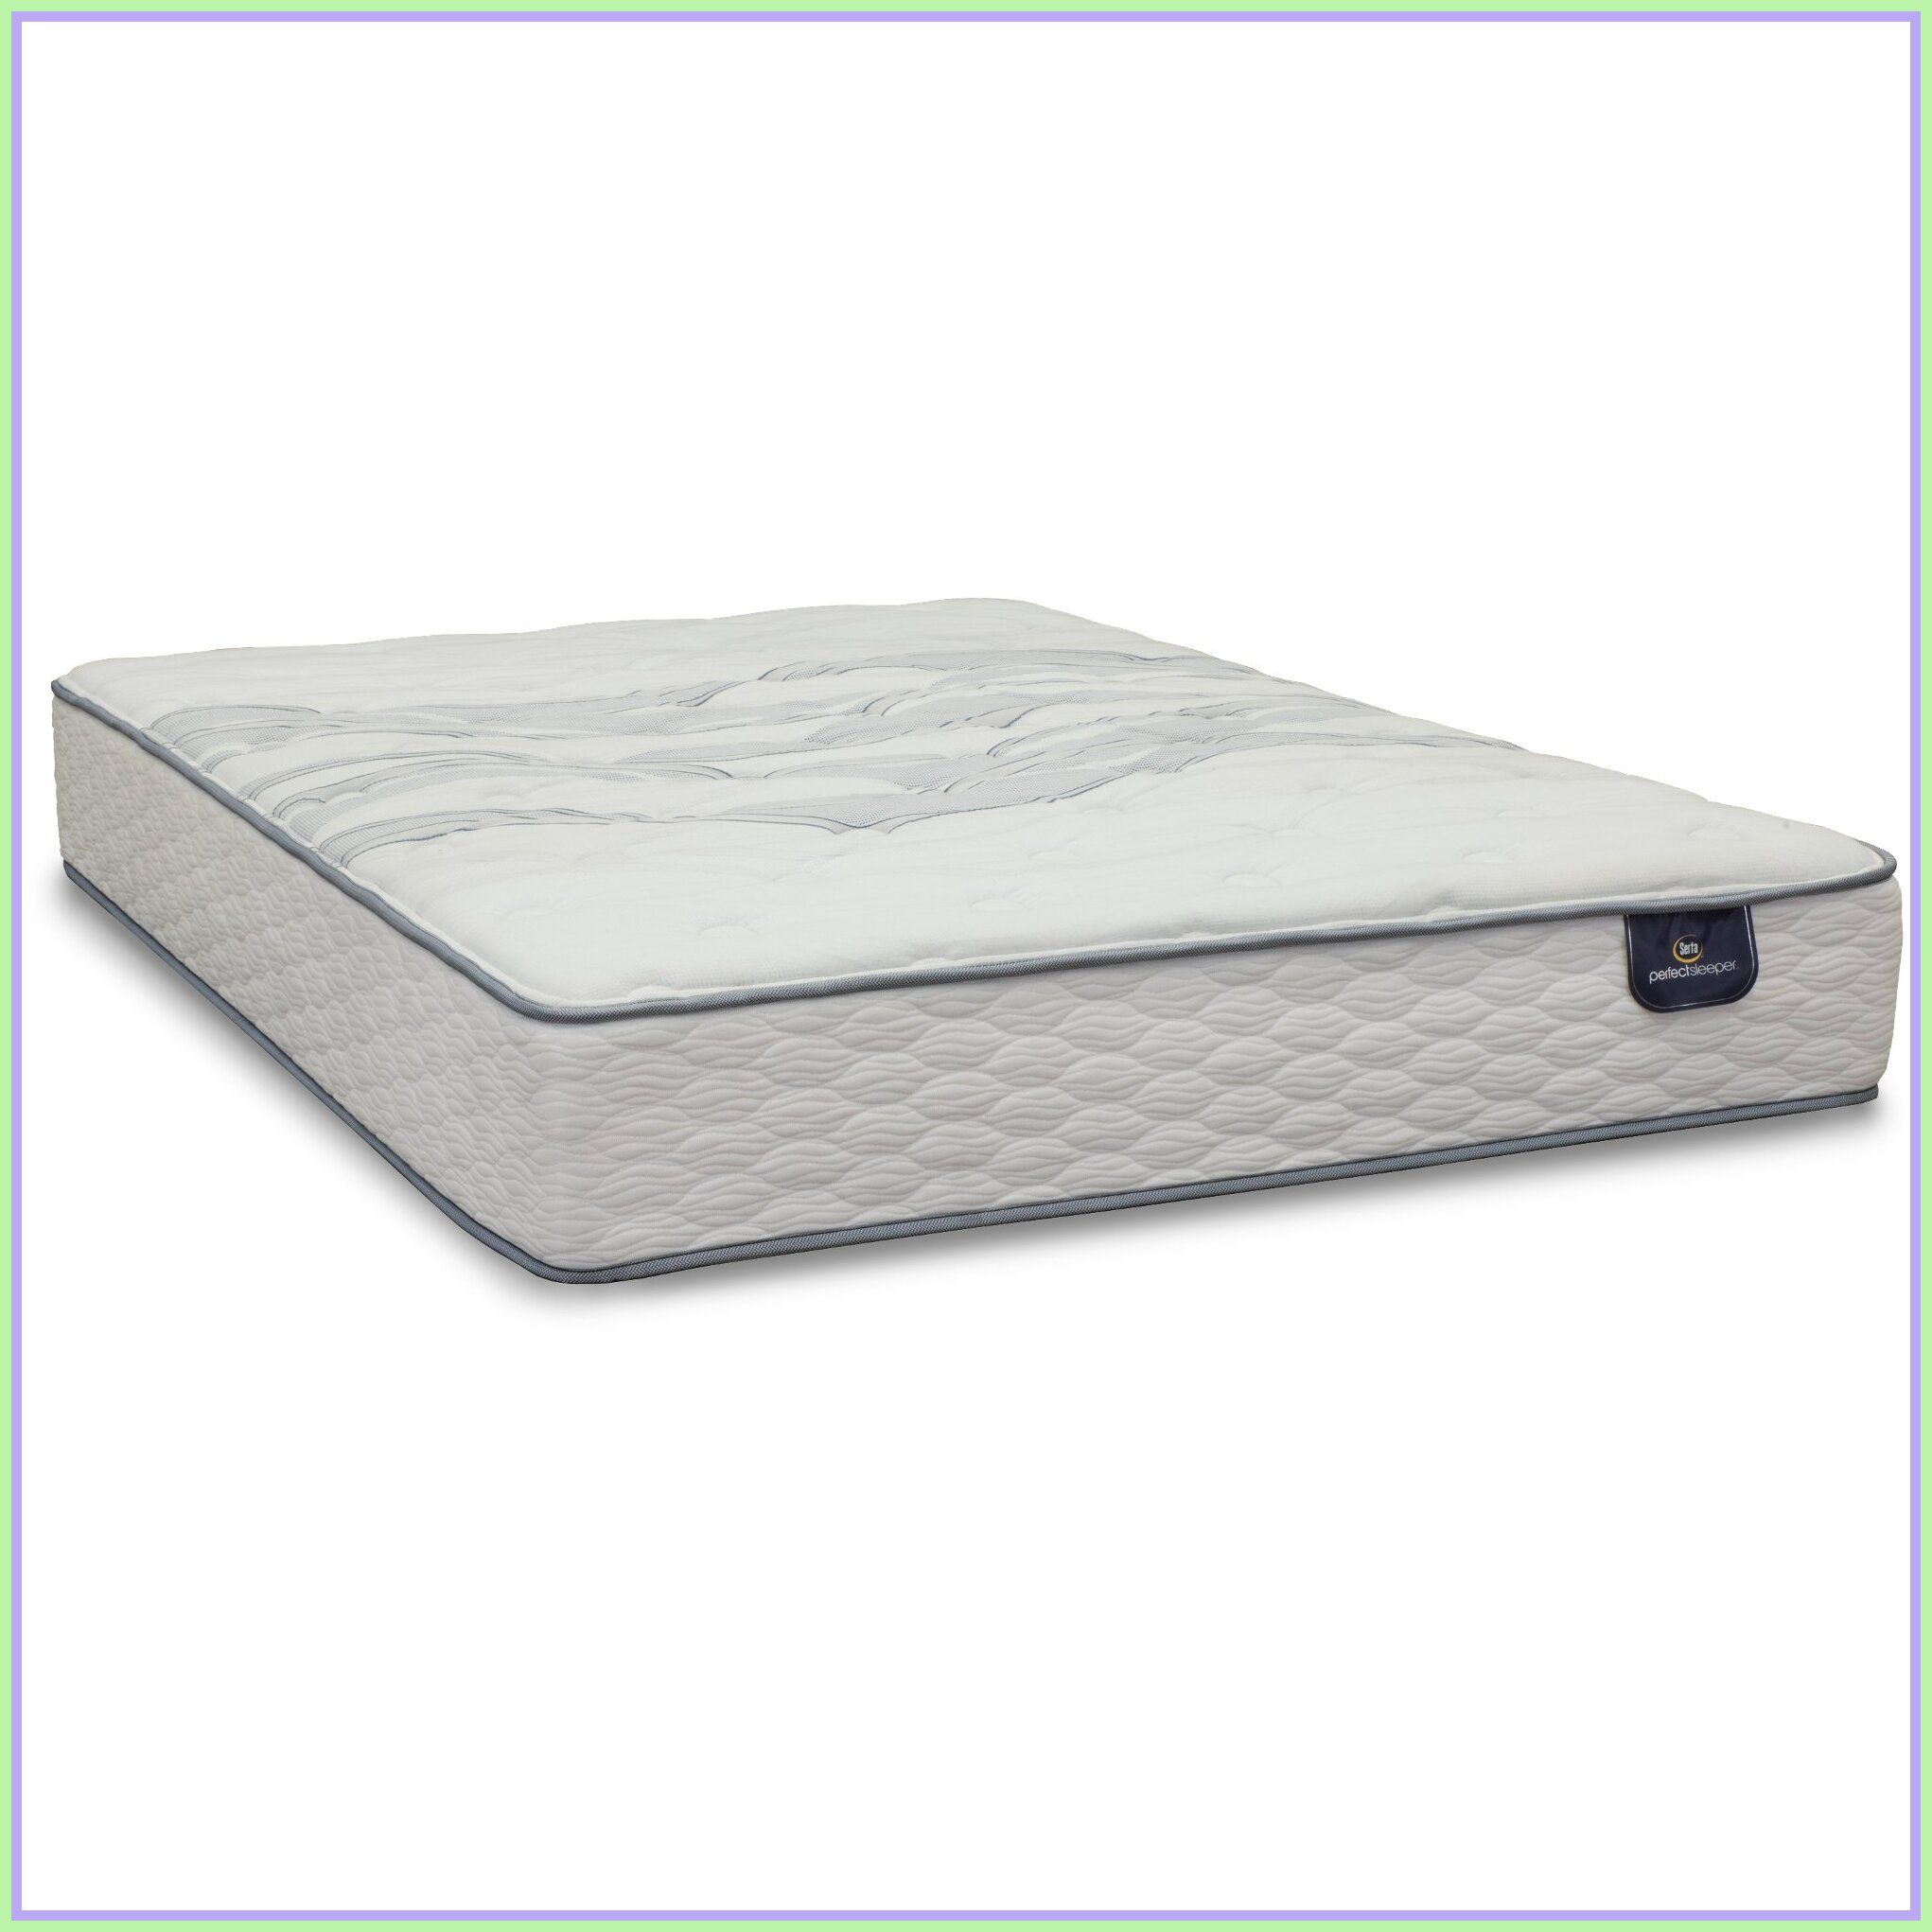 Pin On Mattress Topper Bed Bath And Beyond Canada